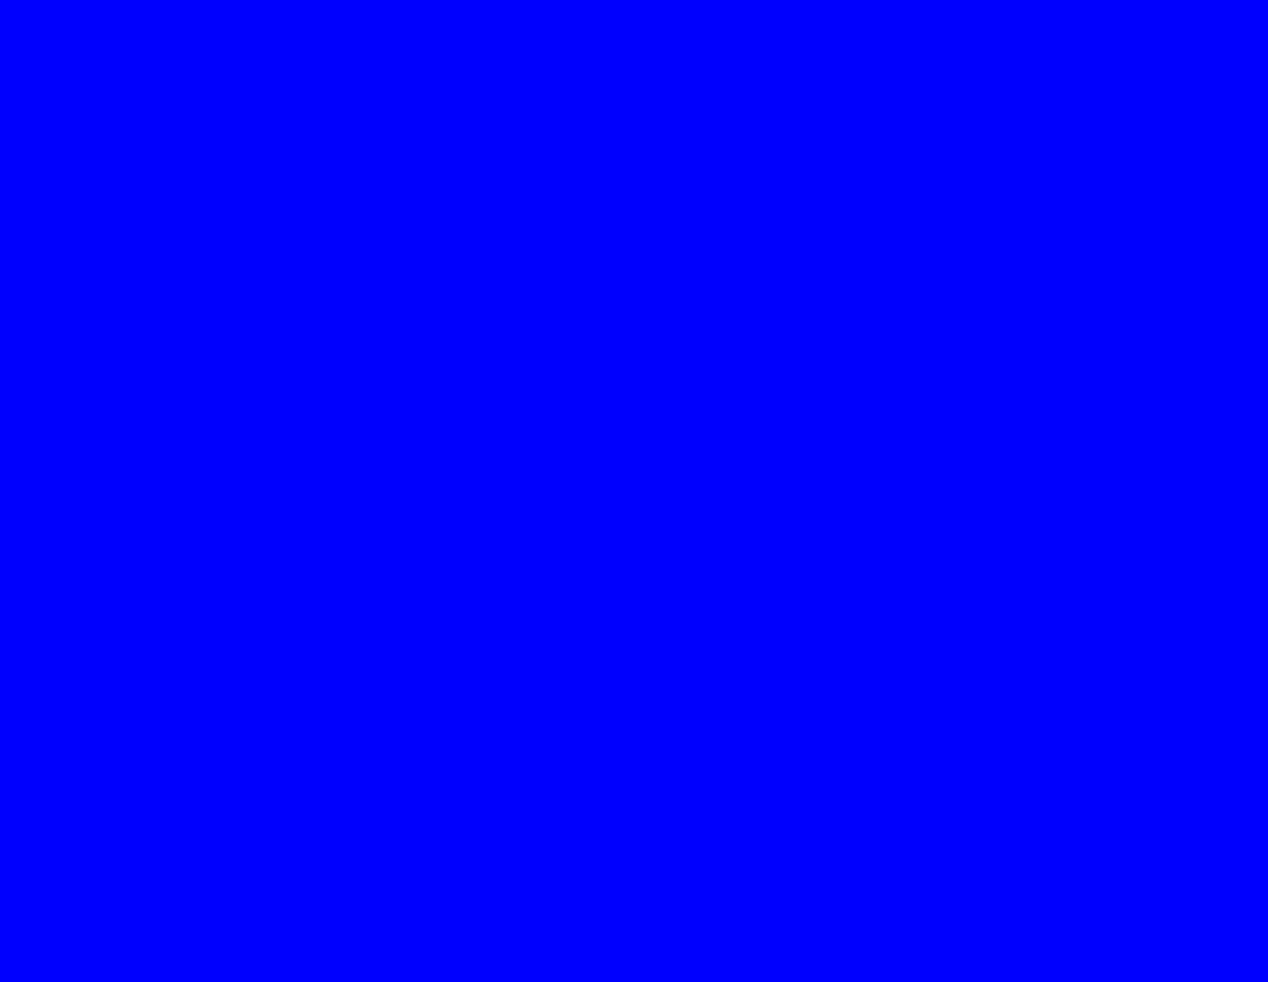 http://www.ledr.com/colours/blue.jpg